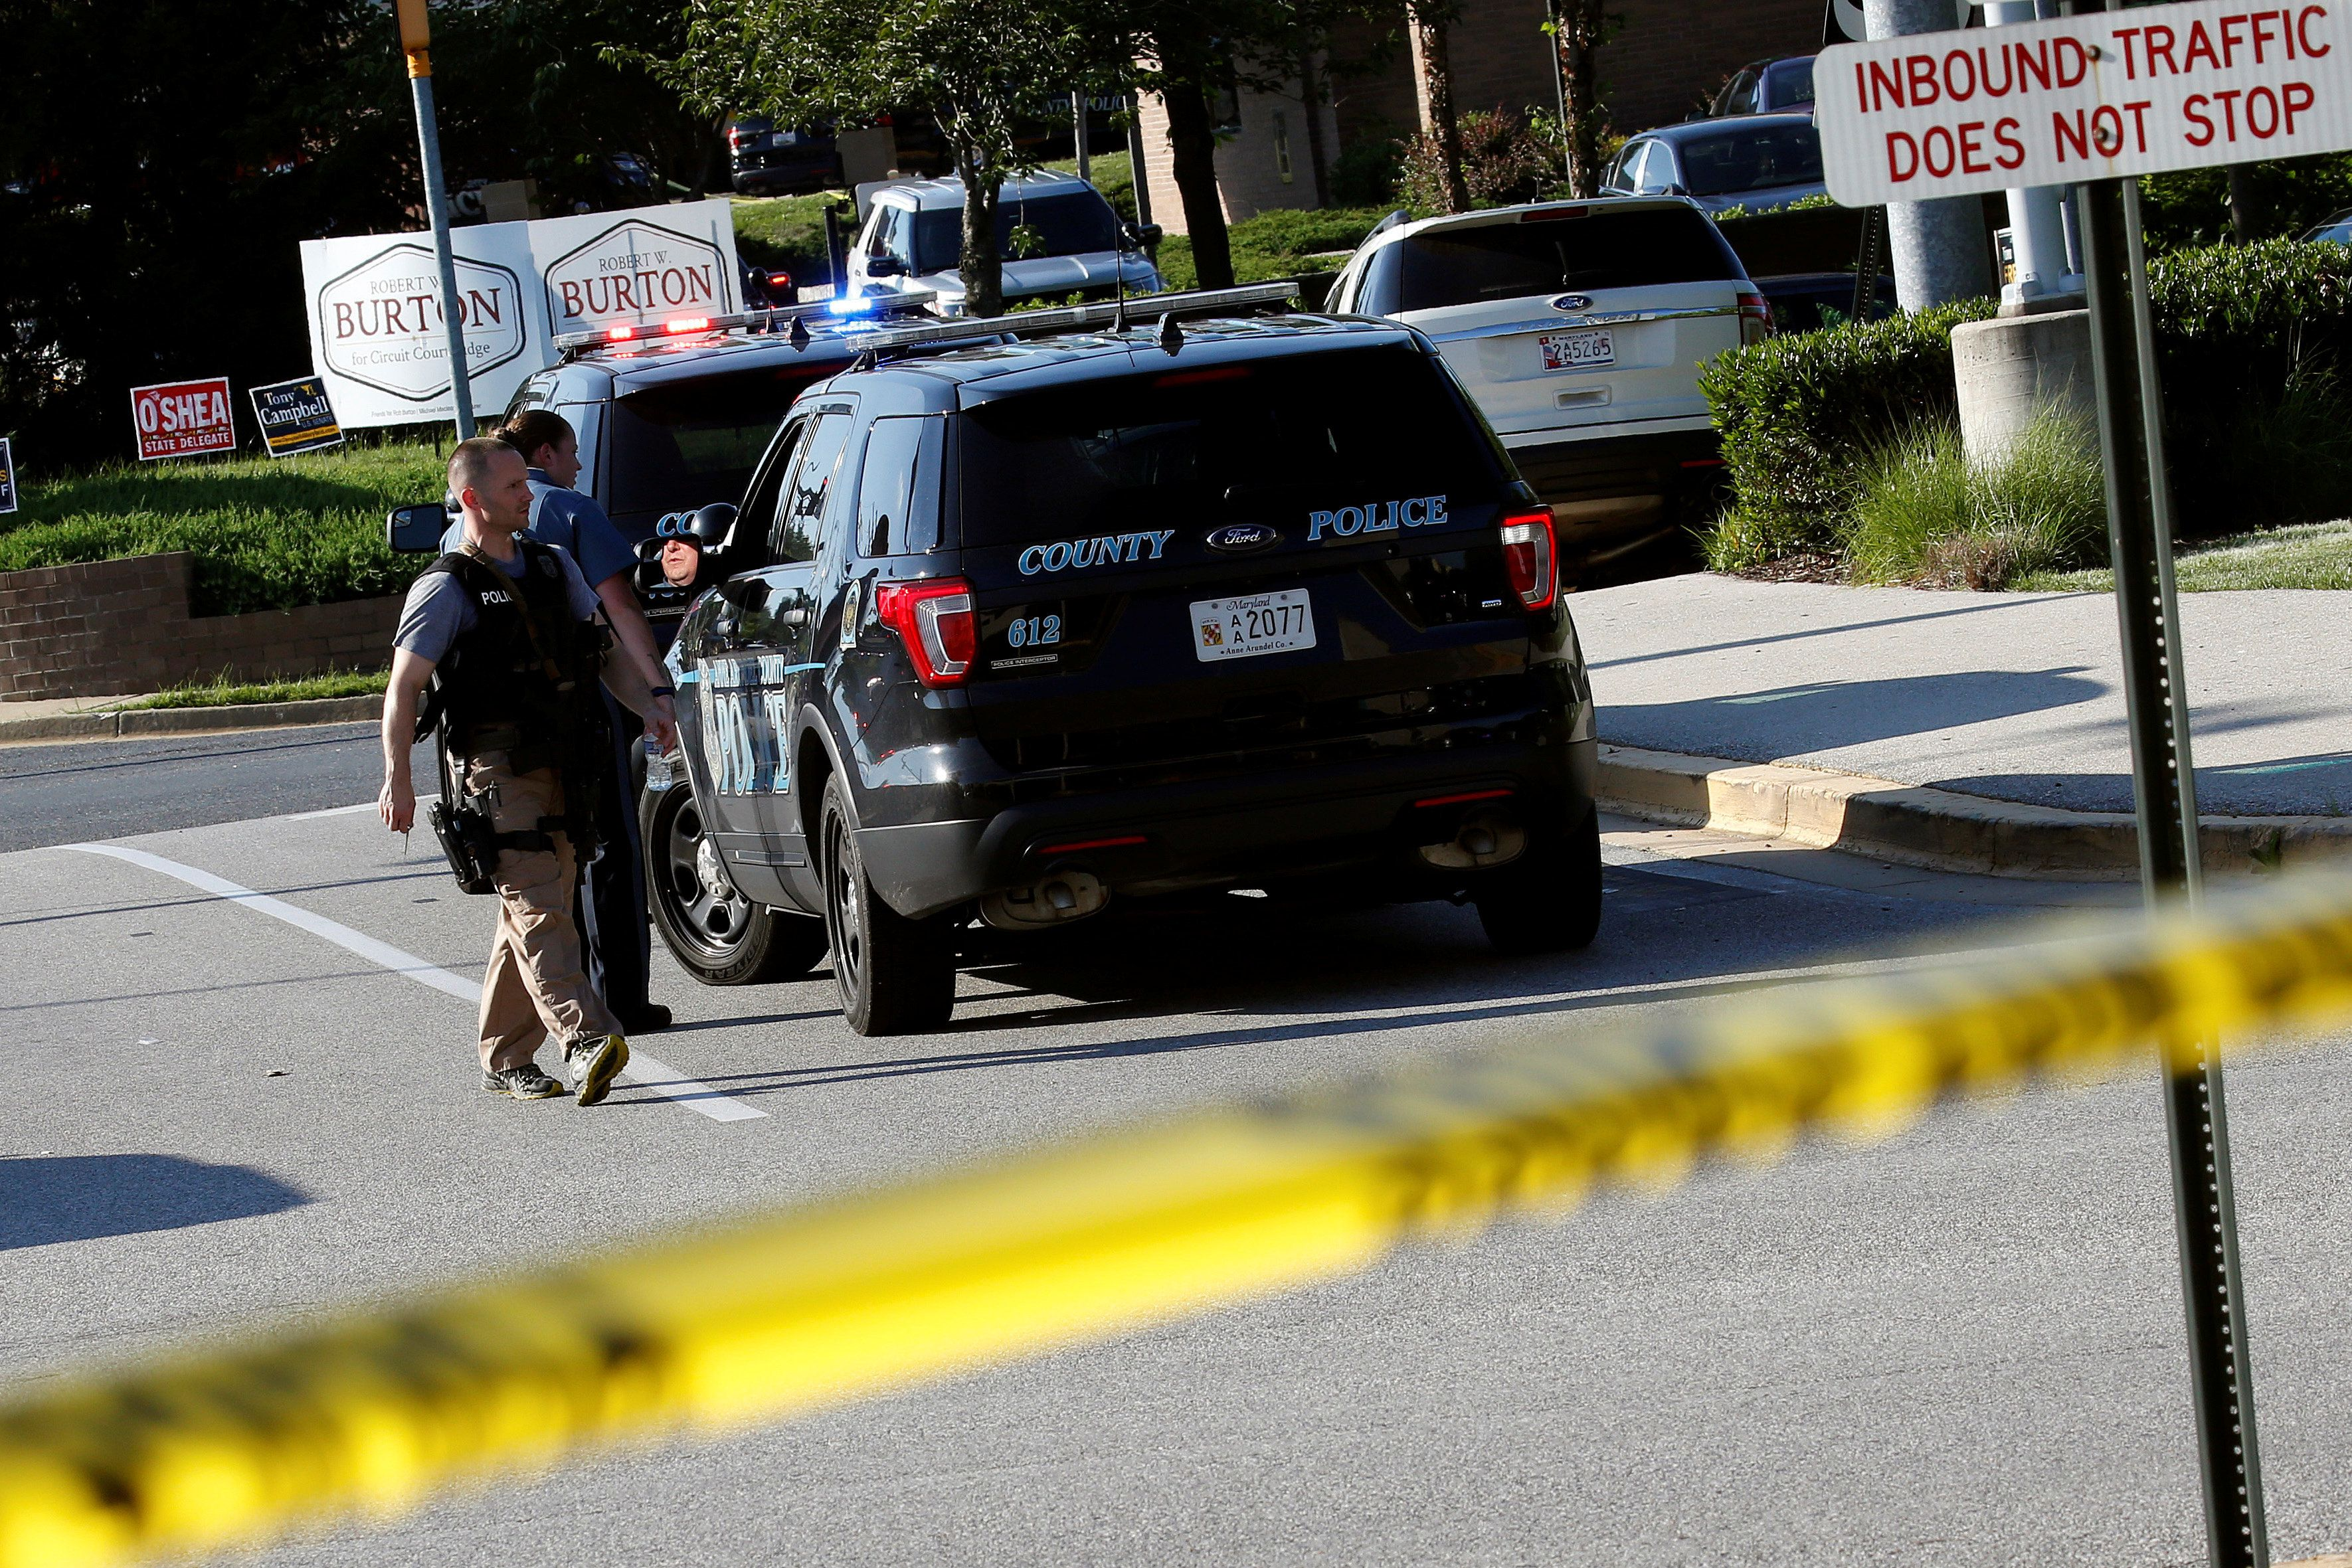 Police walk past a vehicle near a shooting scene after a gunman opened fire at the Capital Gazette newspaper in Annapolis, Maryland, U.S. June 28, 2018. REUTERS/Joshua Roberts